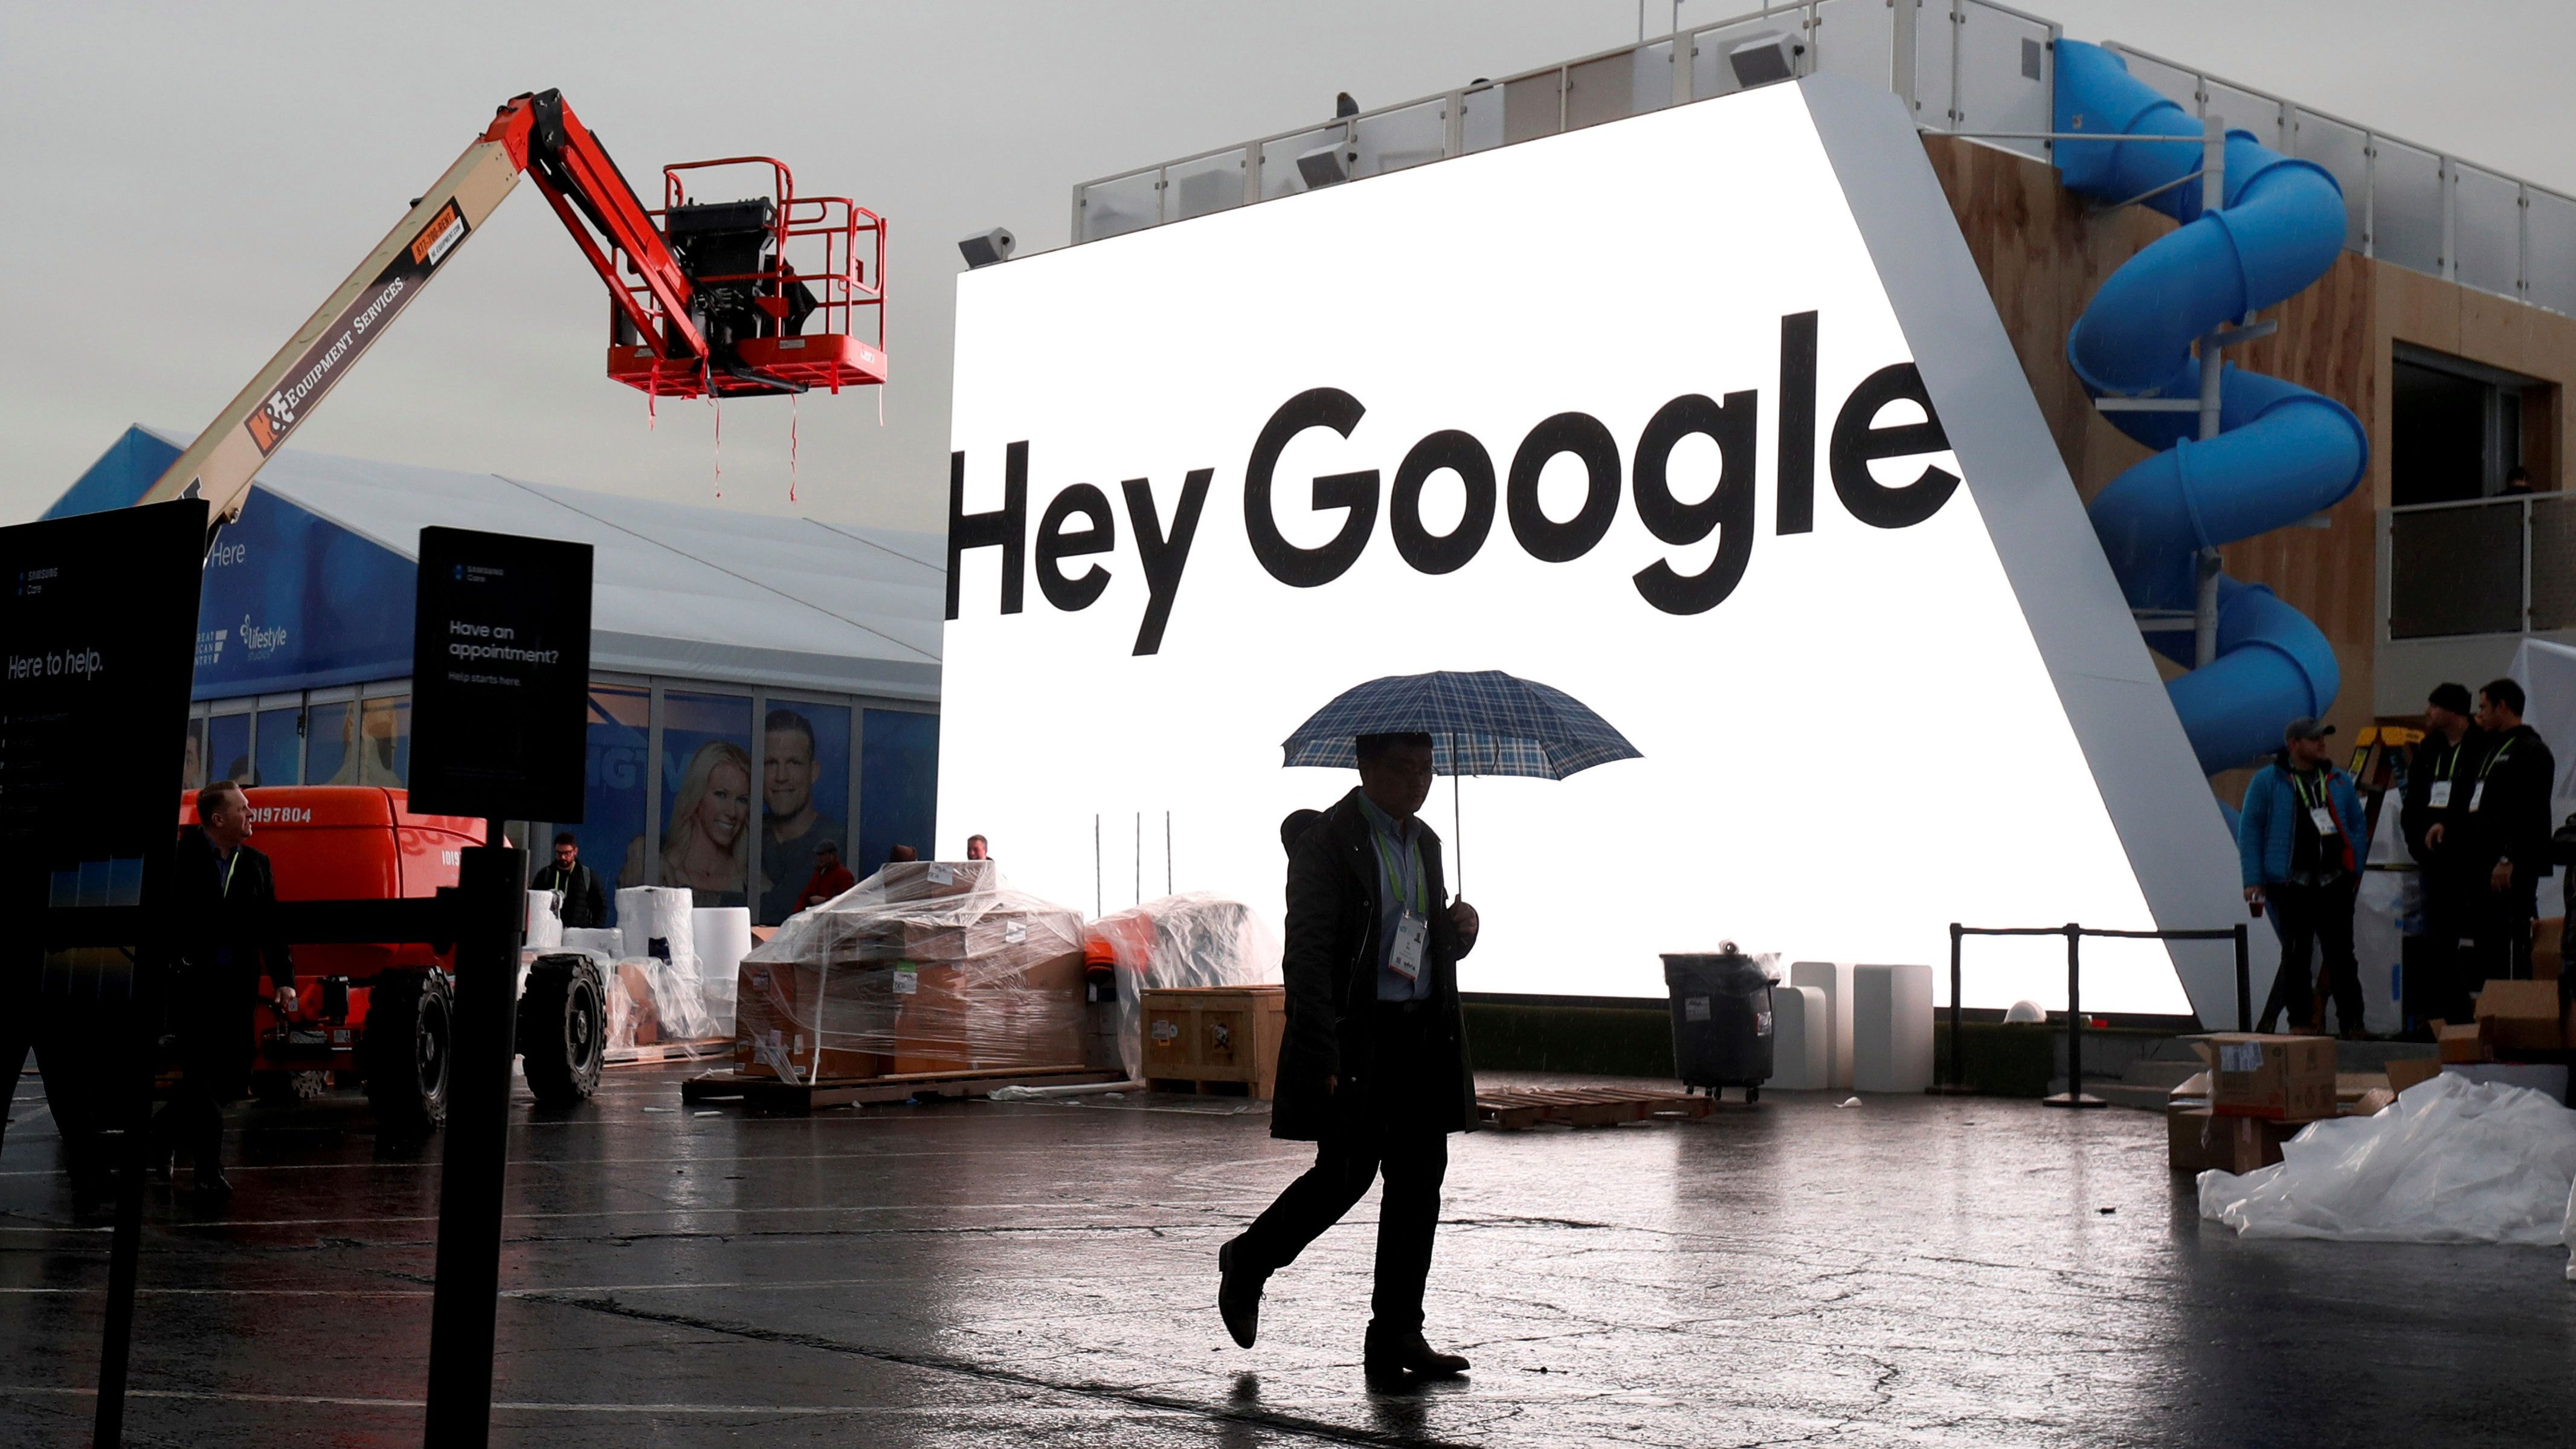 A man walks by the Hey Google booth under construction at the Las Vegas Convention Center in preparation for the 2018 CES in Nevada.